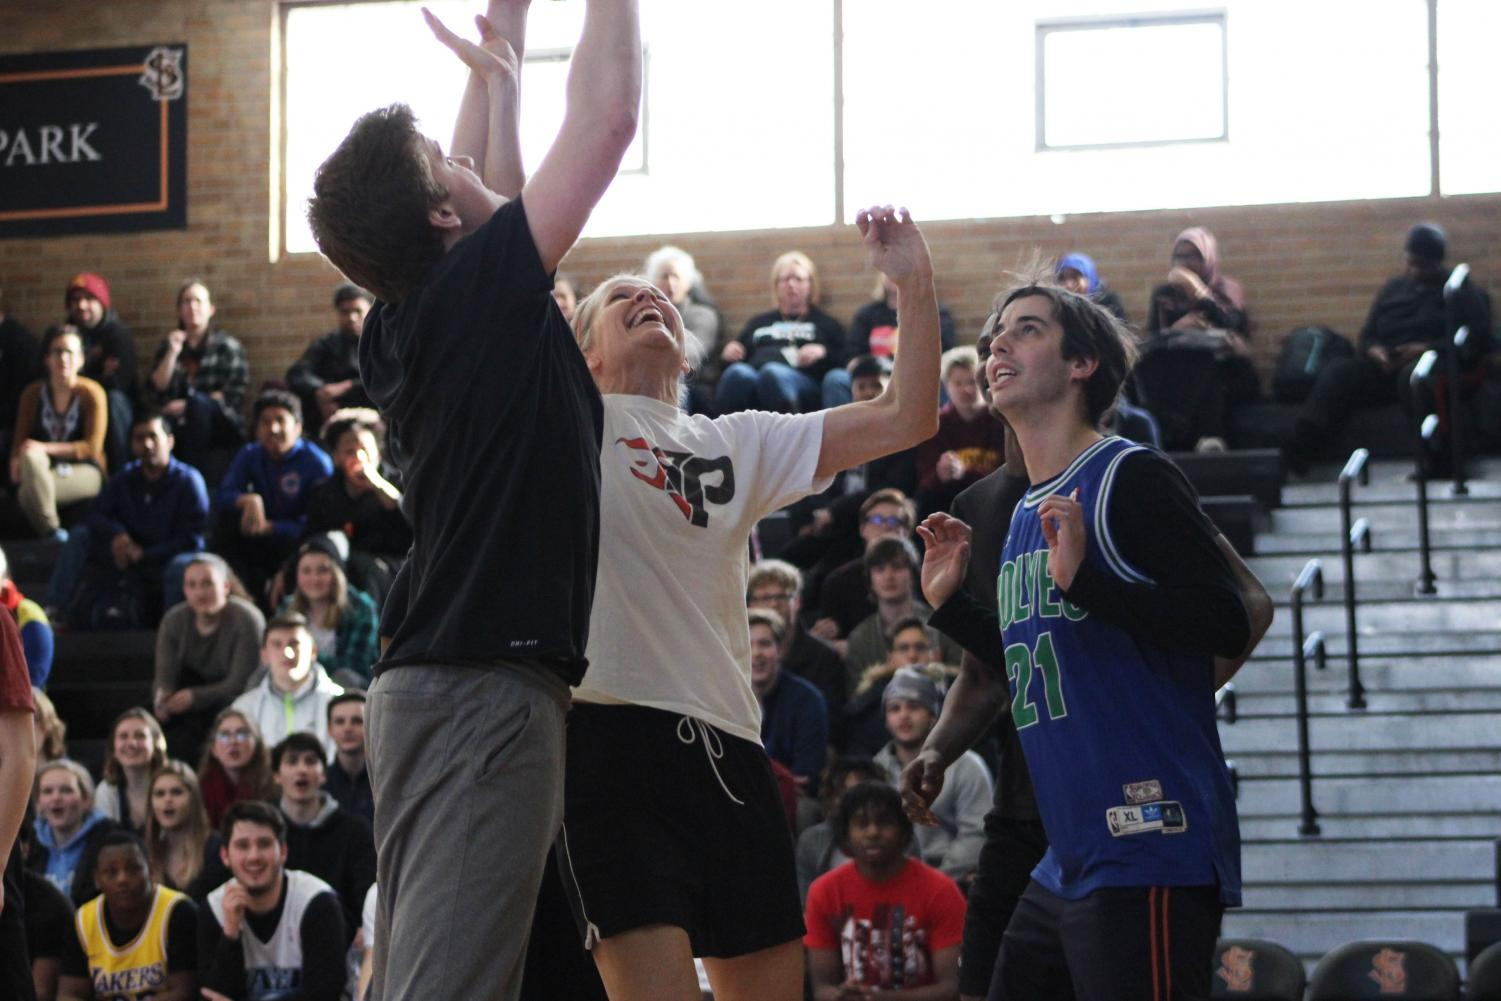 Counselor+Barb+Nelson+blocks+senior+John+Meyer+form+shooting+the+ball.+The+pep+fest+was+to+get+students+excited+for+the+following+weeks+activities.